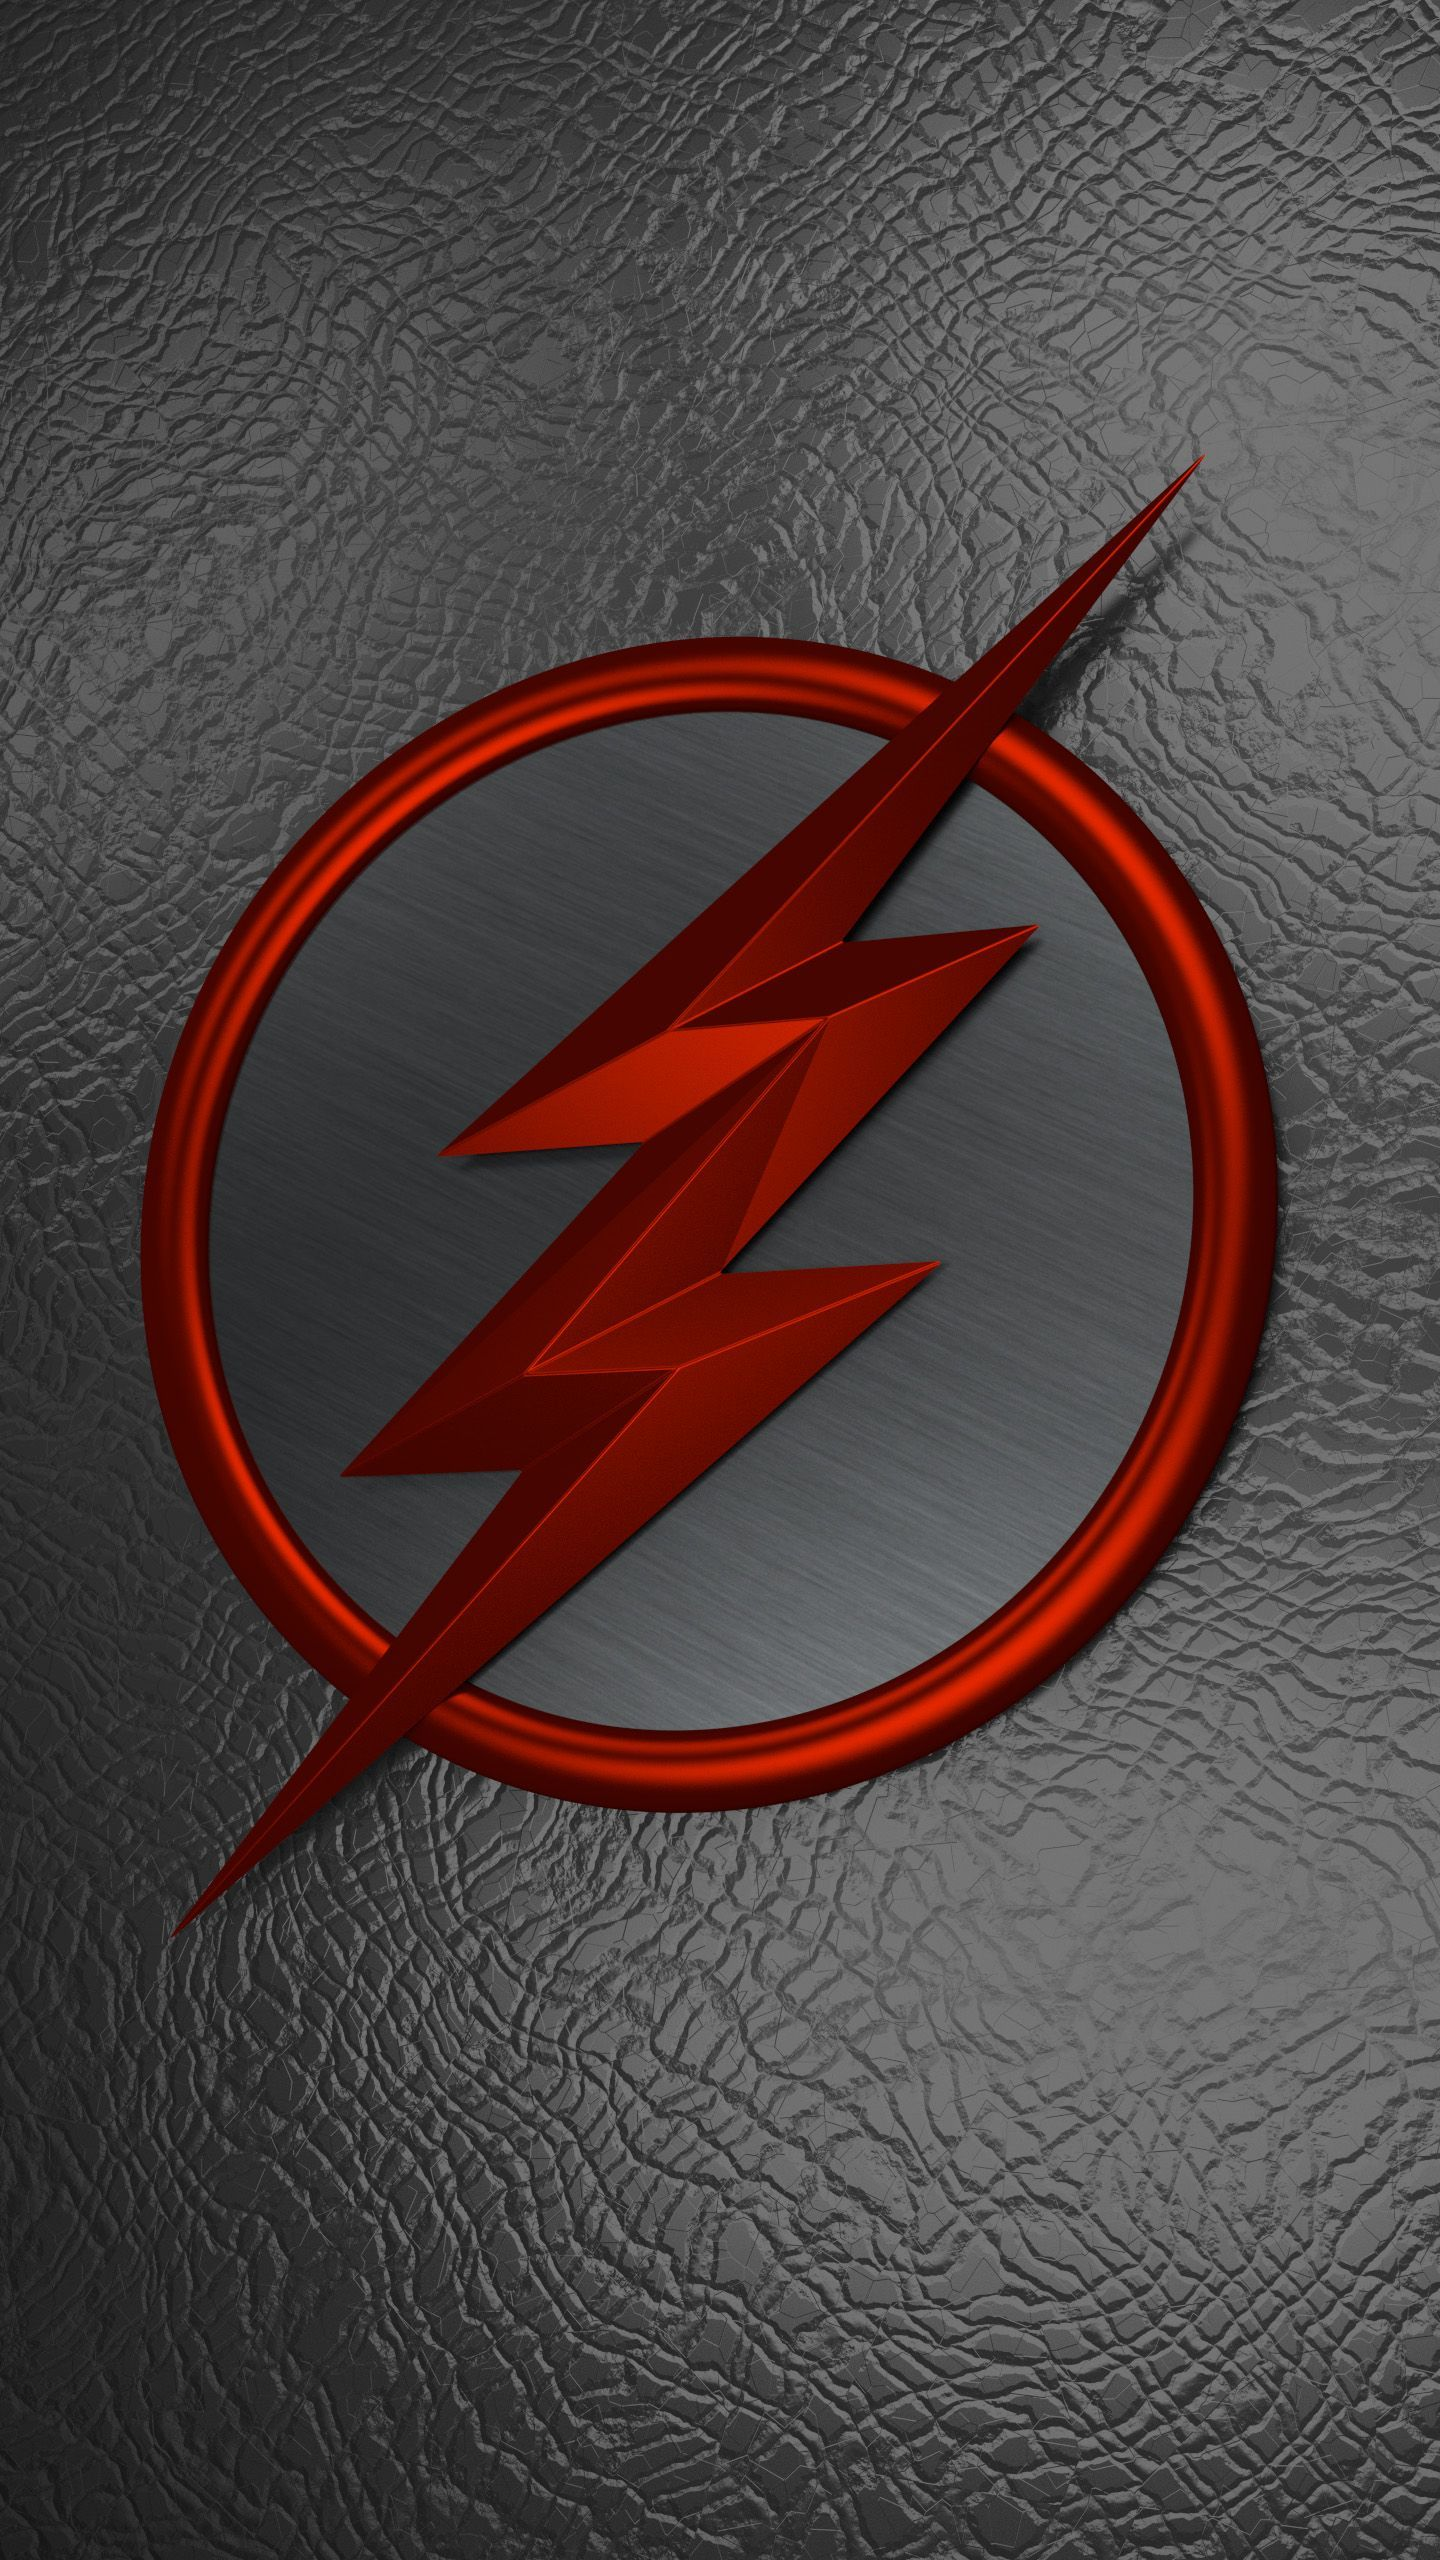 1440x2560 Flash Phone Wallpapers I Made In Blender Uncompressed Images In Flash Wallpaper Zoom The Flash Flash Logo